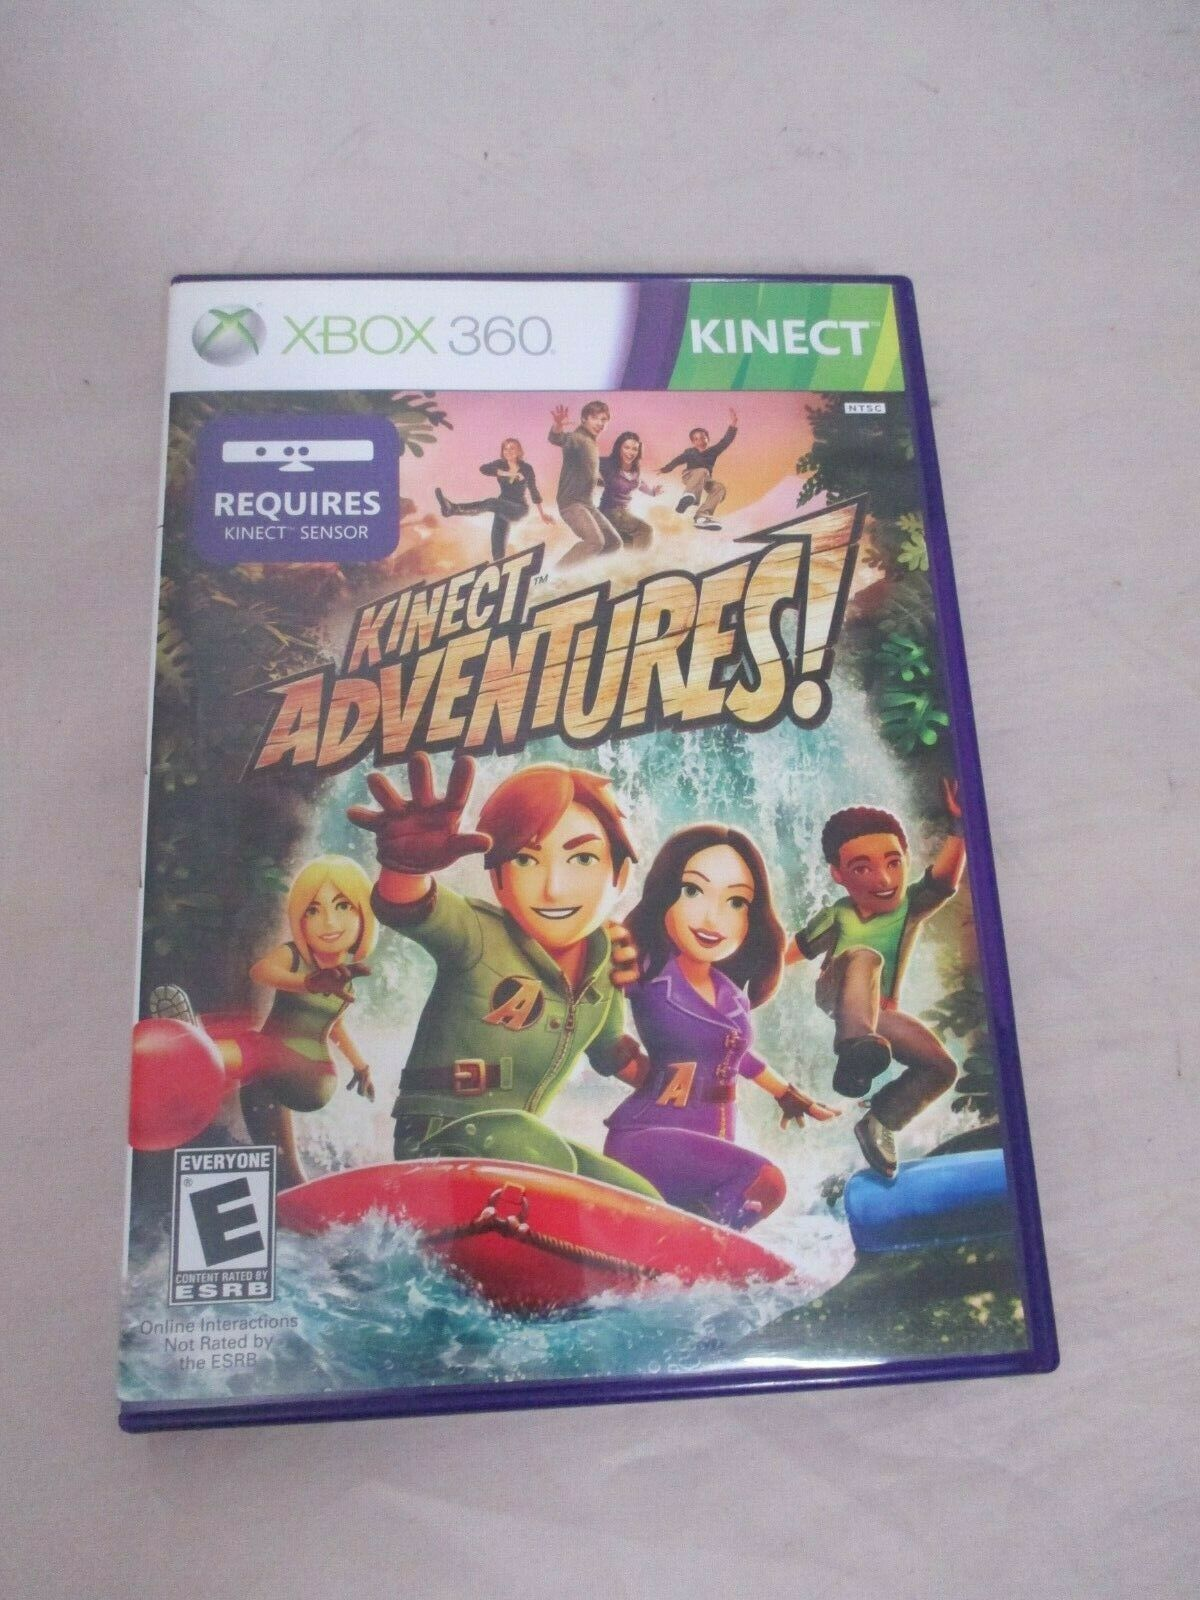 Primary image for Kinect Adventures (Microsoft Xbox 360, 2010) Complete Case Manual